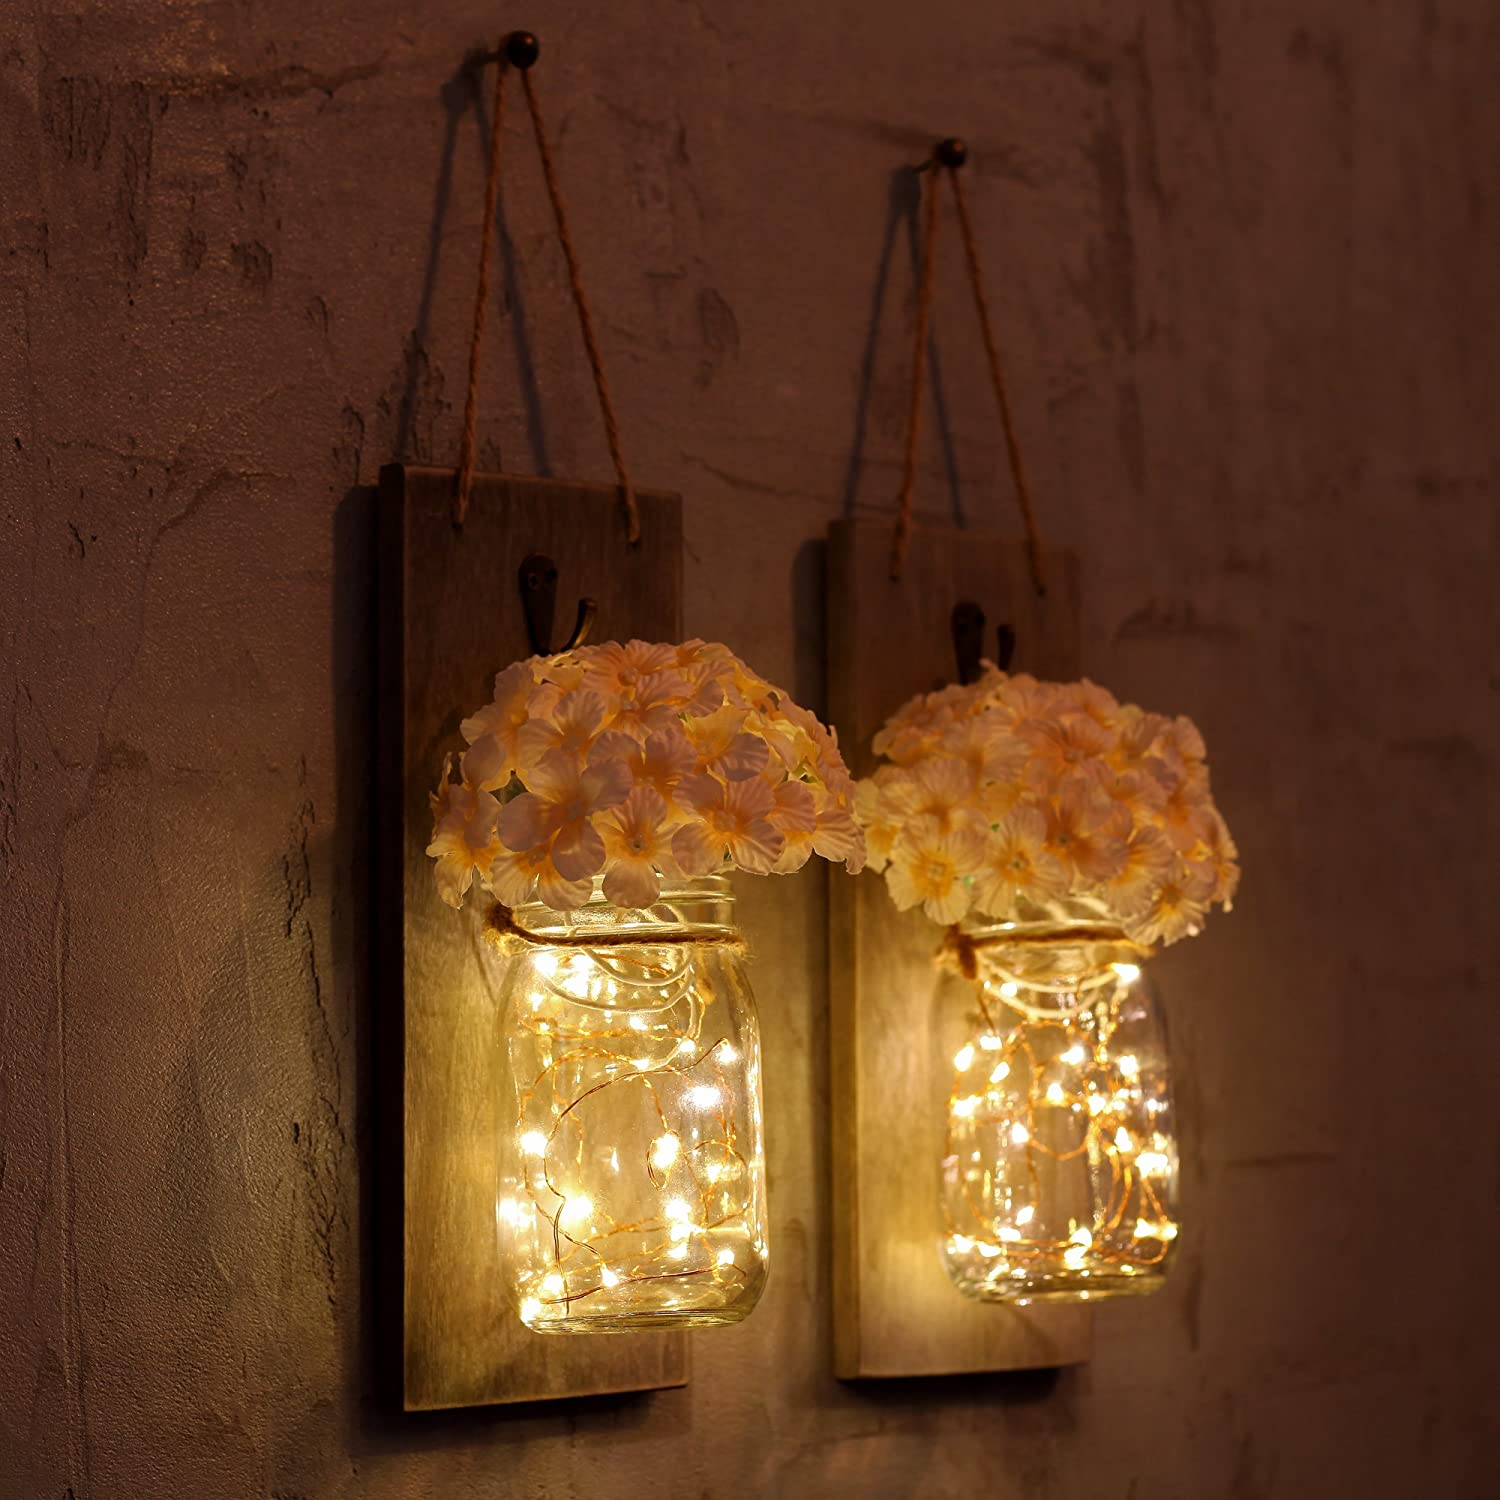 Wall sconces amazon lighting ceiling fans wall lights hanging mason jar sconces with led fairy lights wrought iron hooks silk hydrangea candleflower and led strip lights design for home decoration set of 2 amipublicfo Image collections